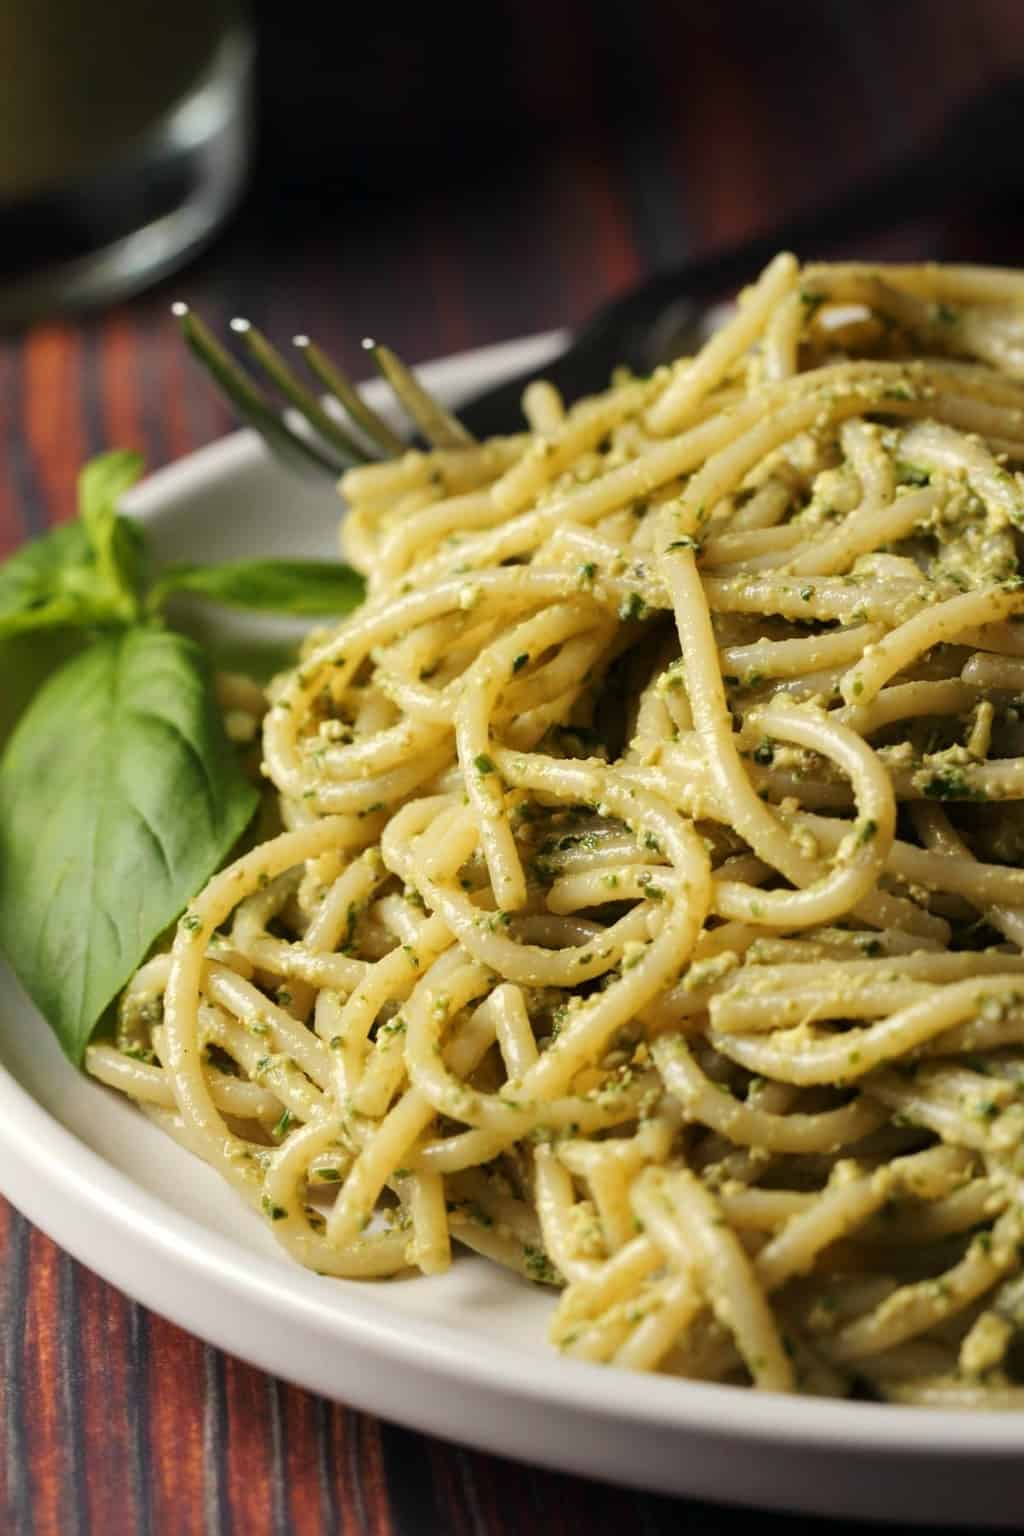 Vegan pesto with pasta on a white plate.